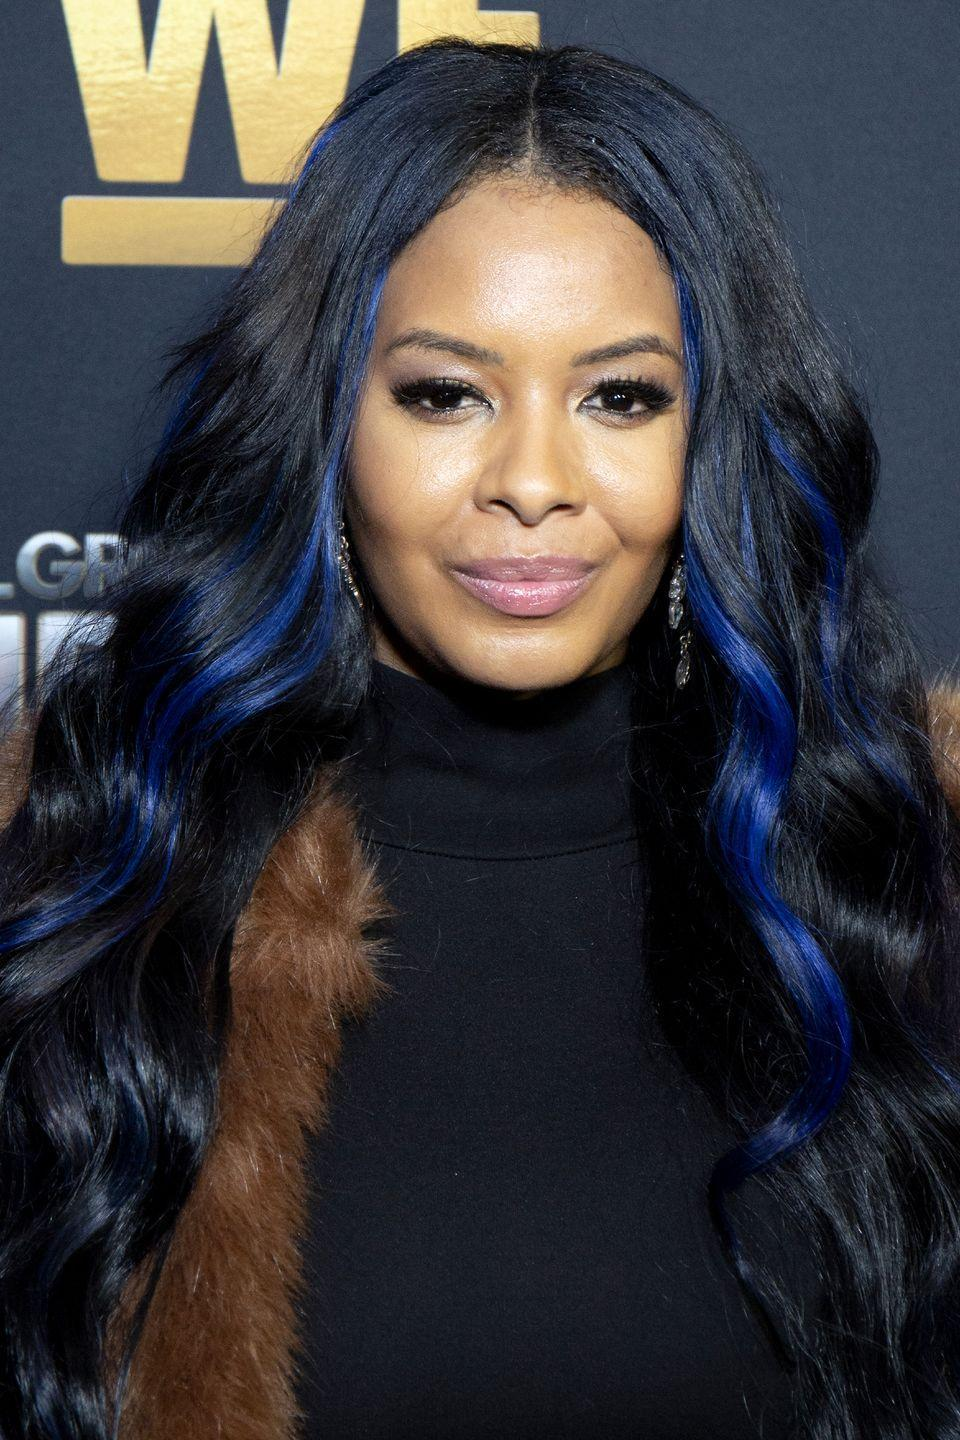 "<p>It's never a dull hair day with royal blue <a href=""https://www.goodhousekeeping.com/beauty/hair/g5063/hair-color-highlights/"" rel=""nofollow noopener"" target=""_blank"" data-ylk=""slk:highlights"" class=""link rapid-noclick-resp"">highlights</a> woven through your long curly hair.</p>"